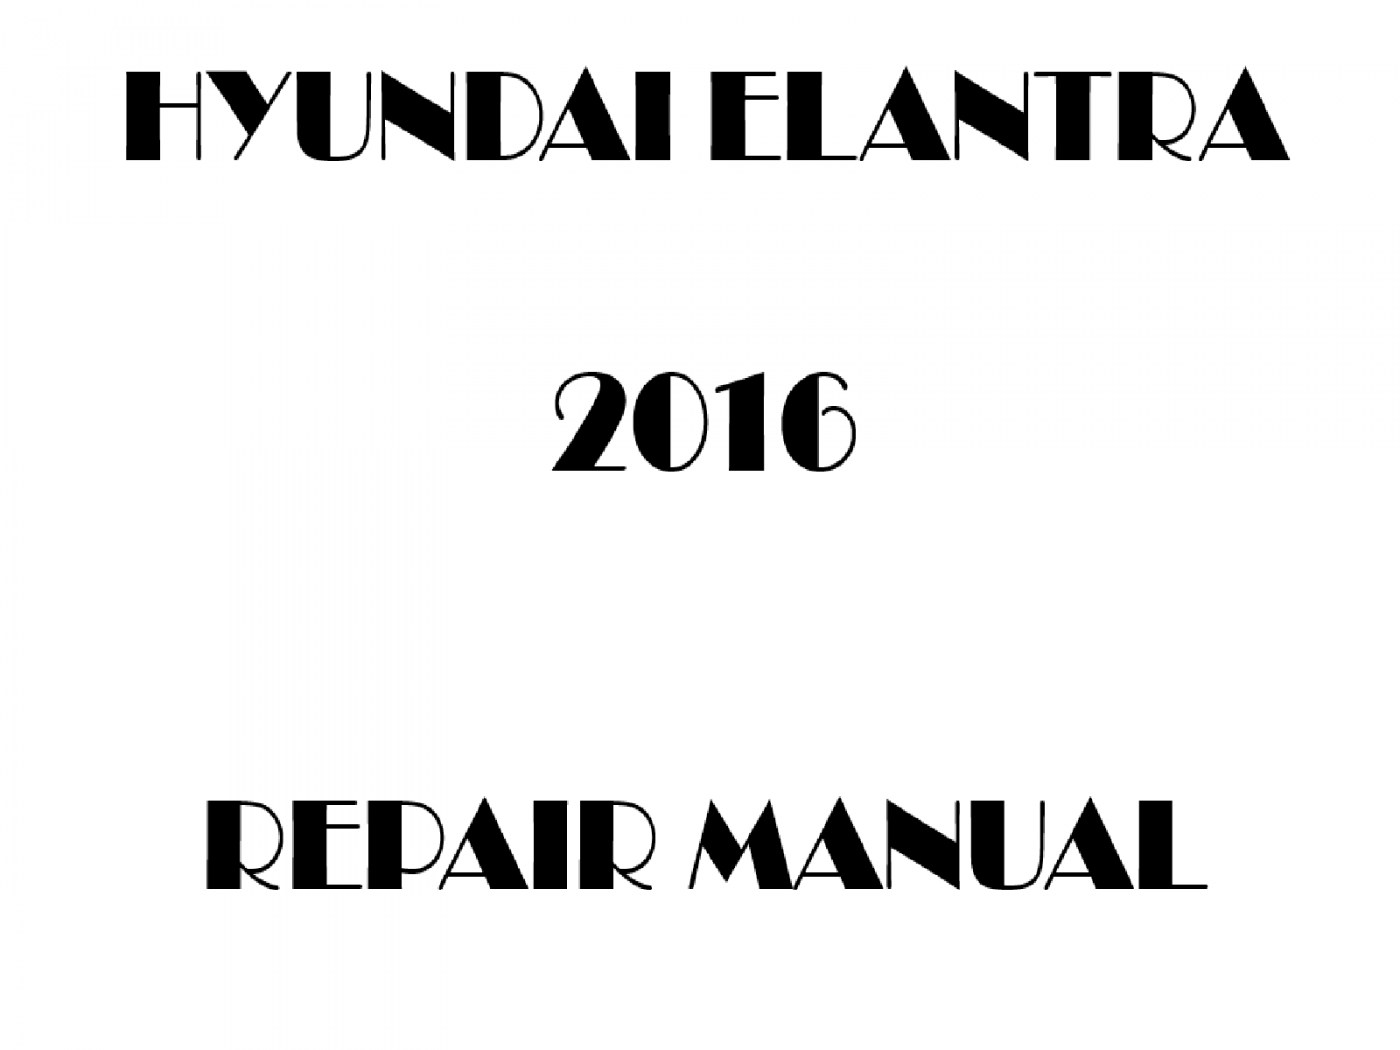 2016 Hyundai Elantra repair manual